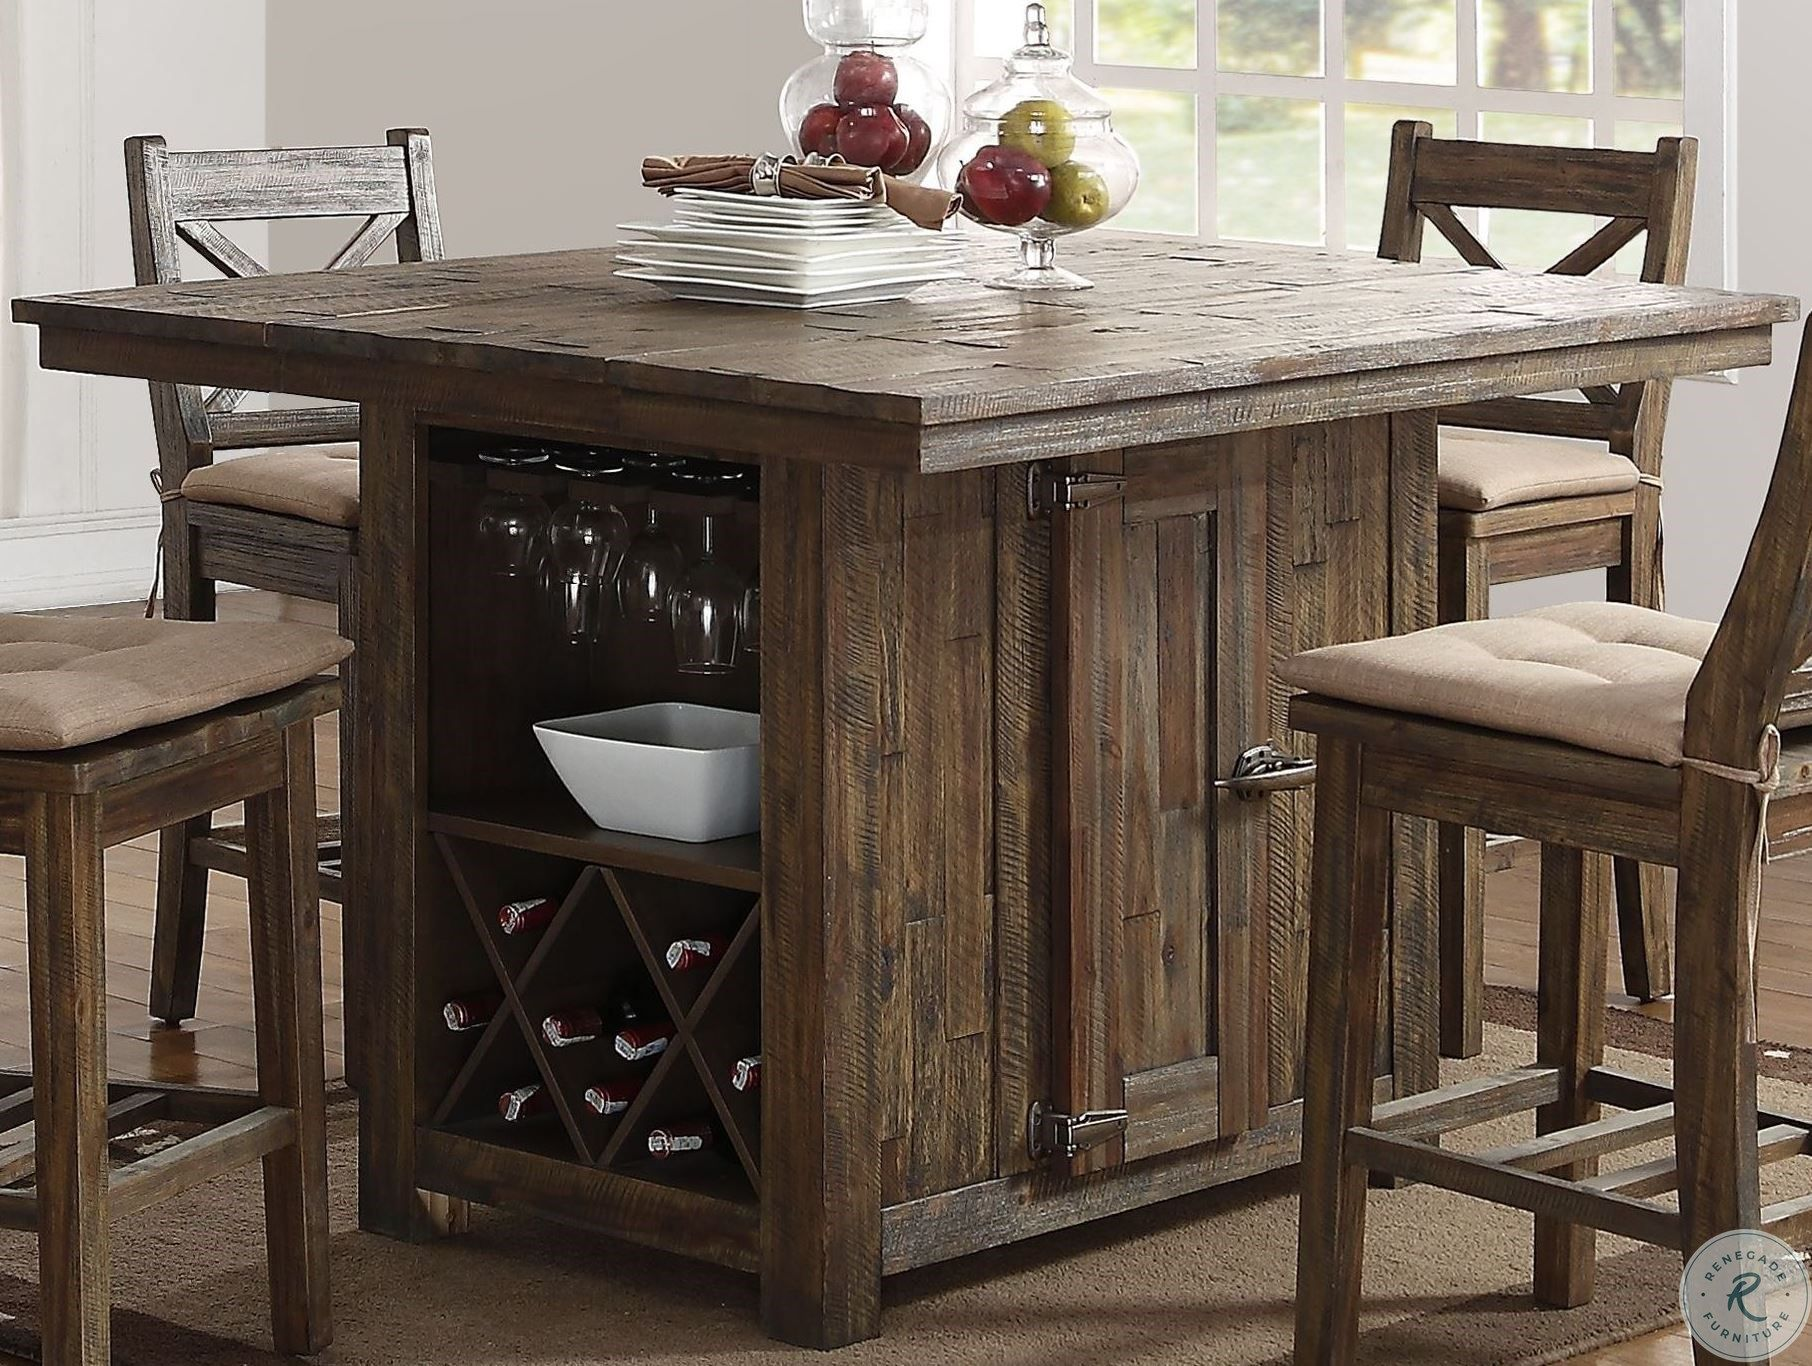 Heather Two Tone Extendable Island Table Counter Height Dining Room Tables Top Kitchen Table Bar Height Kitchen Table